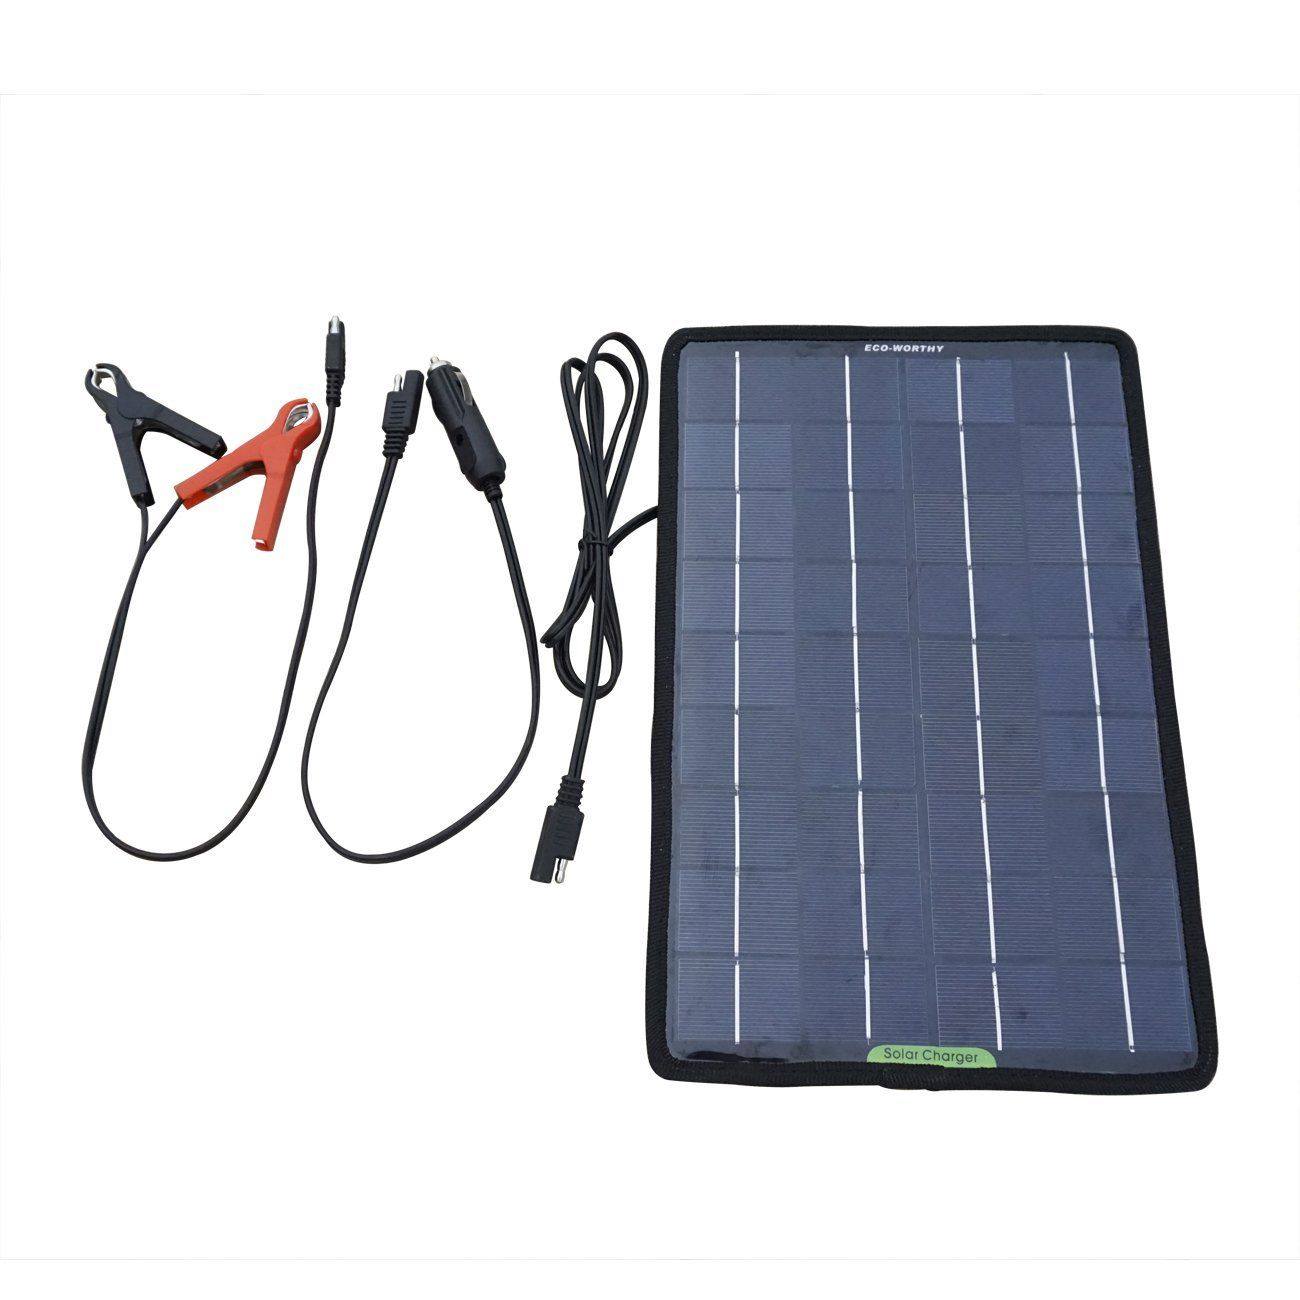 Fulfilled By Amazon You Will Get The Solar Panel Prompt After Purchasing For New Year Promotion 5 Di Solar Battery Charger Solar Charger Solar Panel Battery